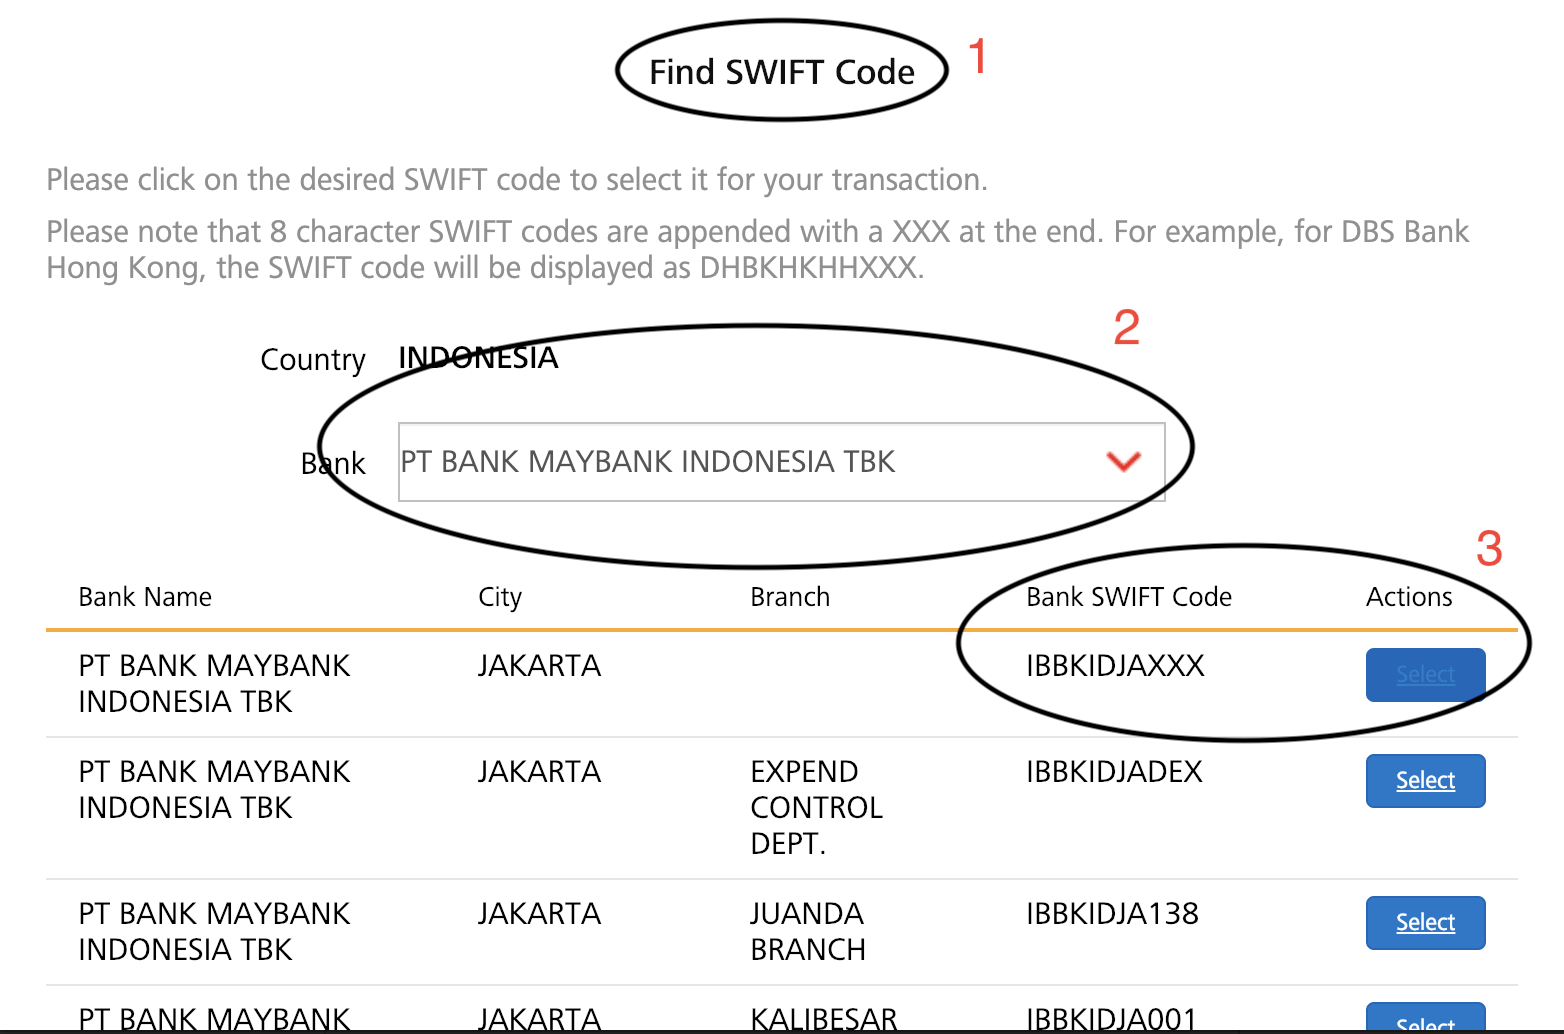 Look for PT Bank Maybank Indonesia TBK